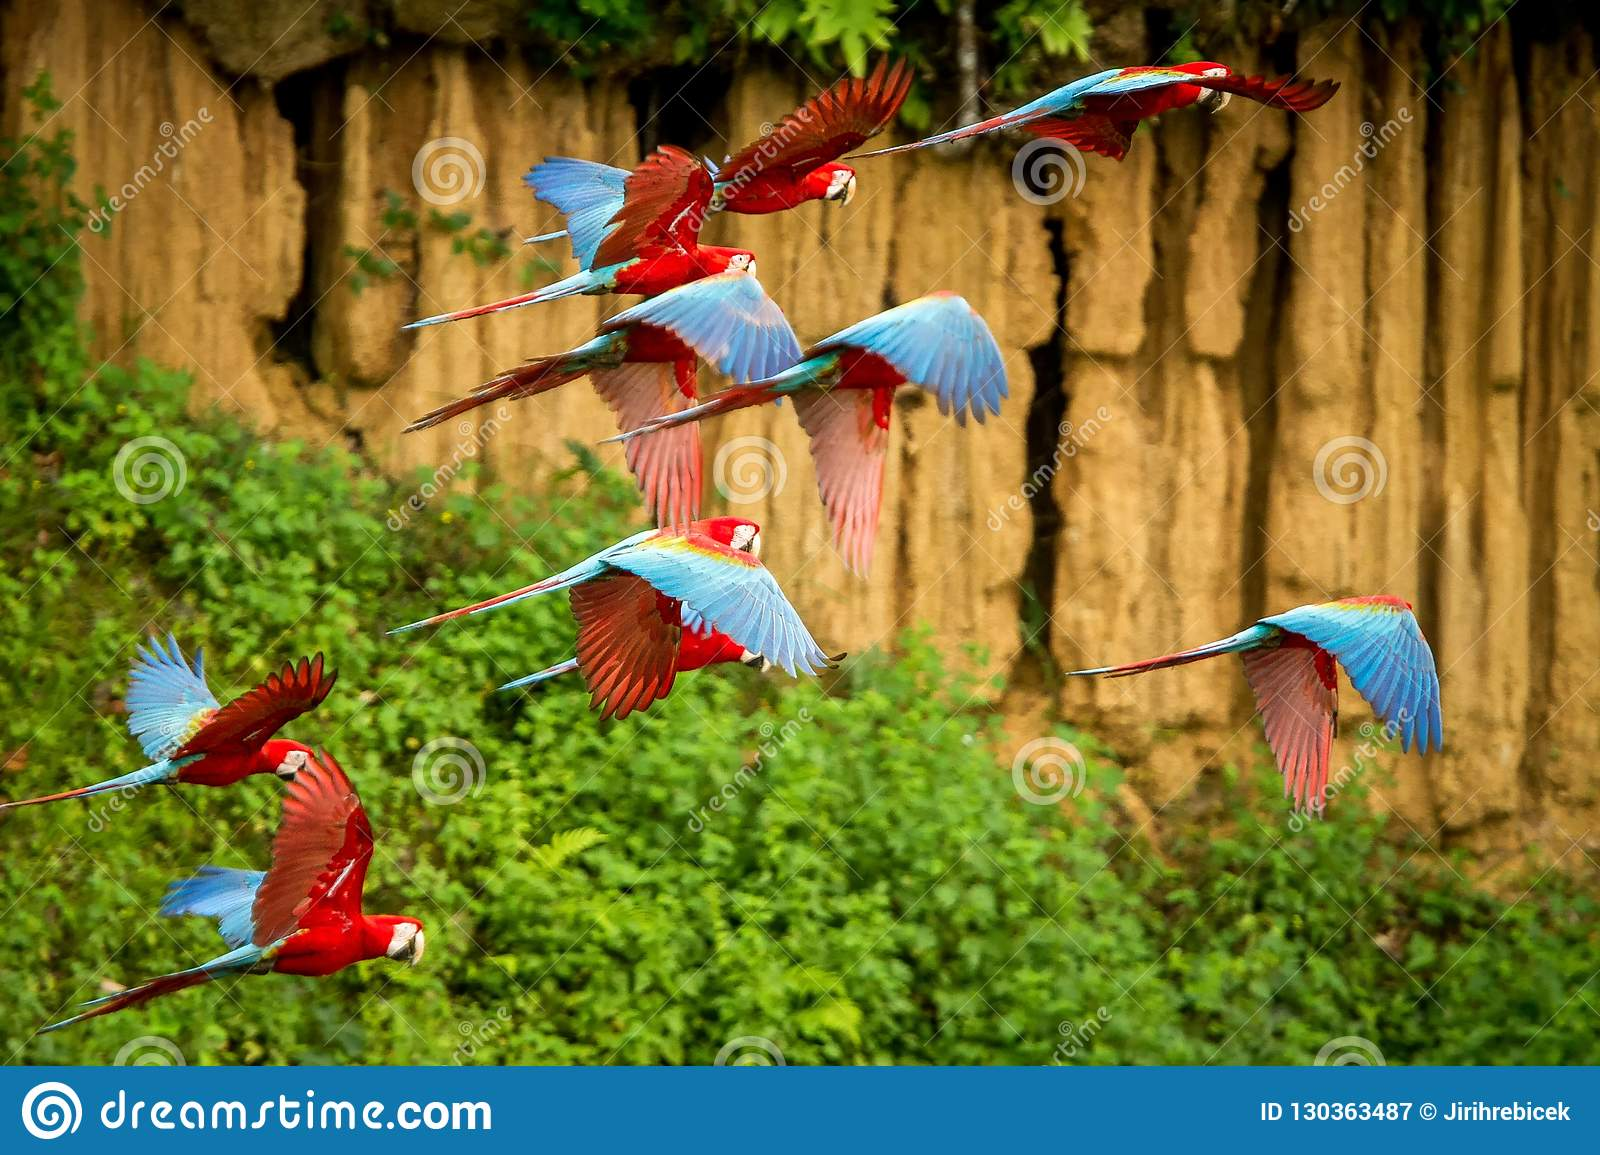 Flock of red parrot in flight. Macaw flying, green vegetation in background. Red and green Macaw in tropical forest, Peru